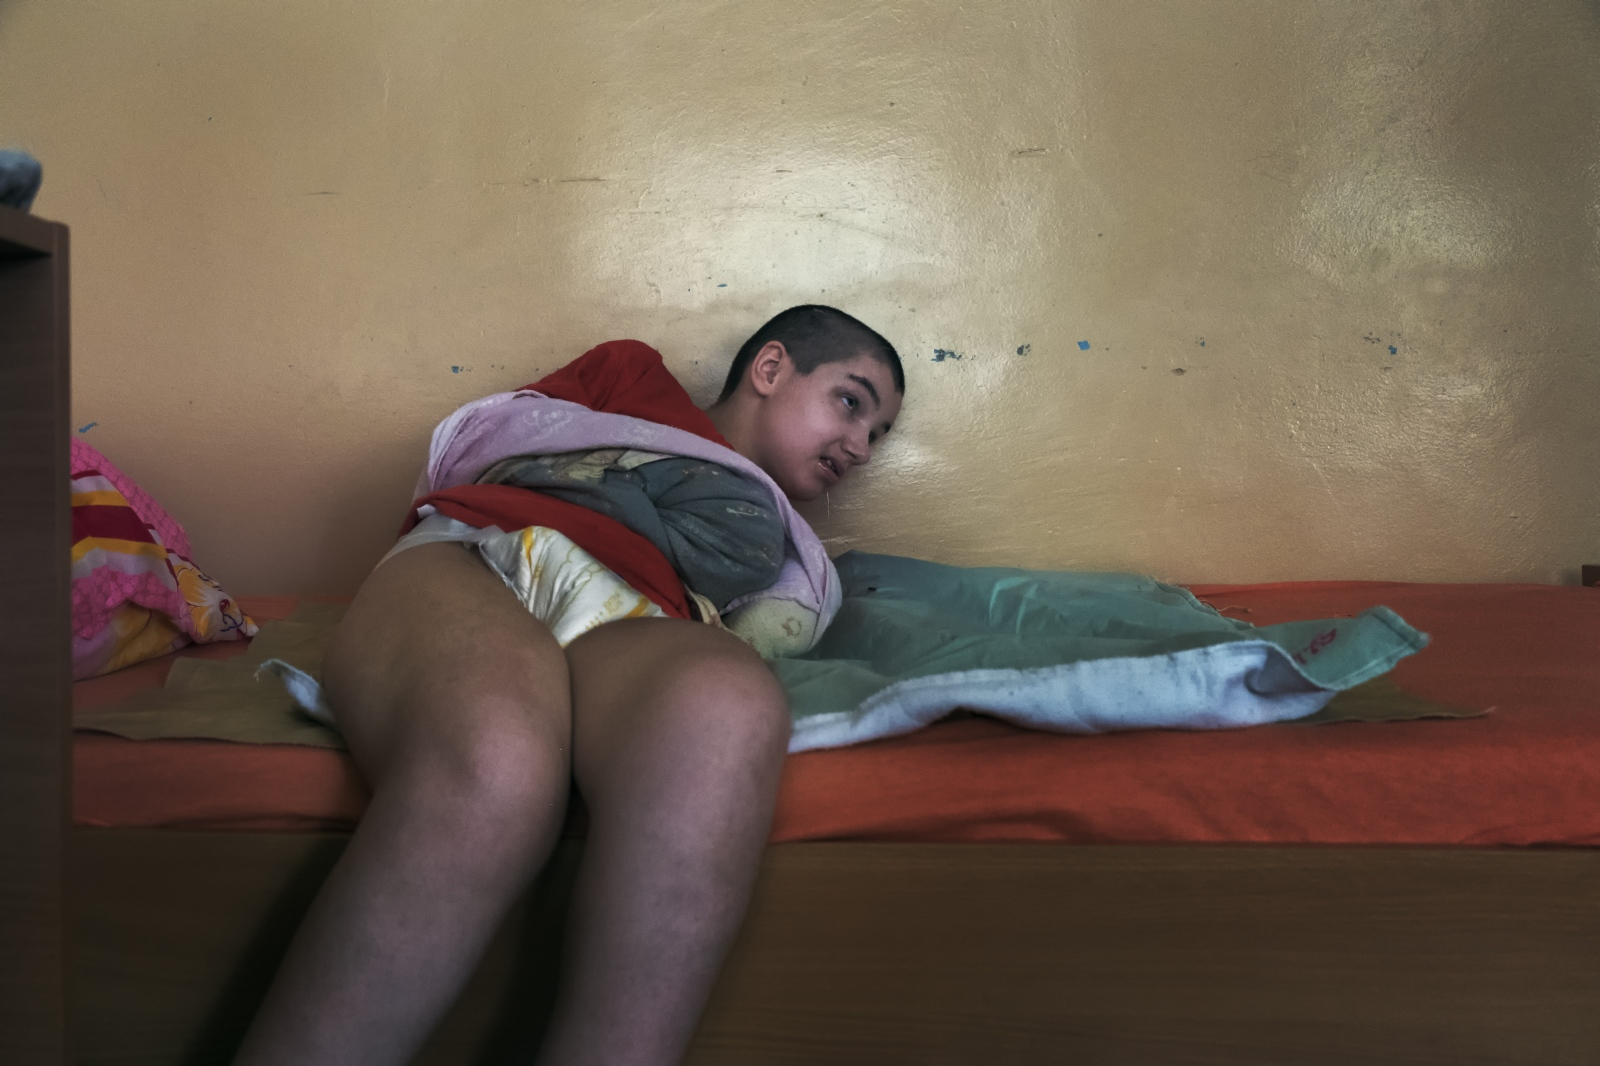 The children are not properly diagnosed and are kept restrained in their beds.